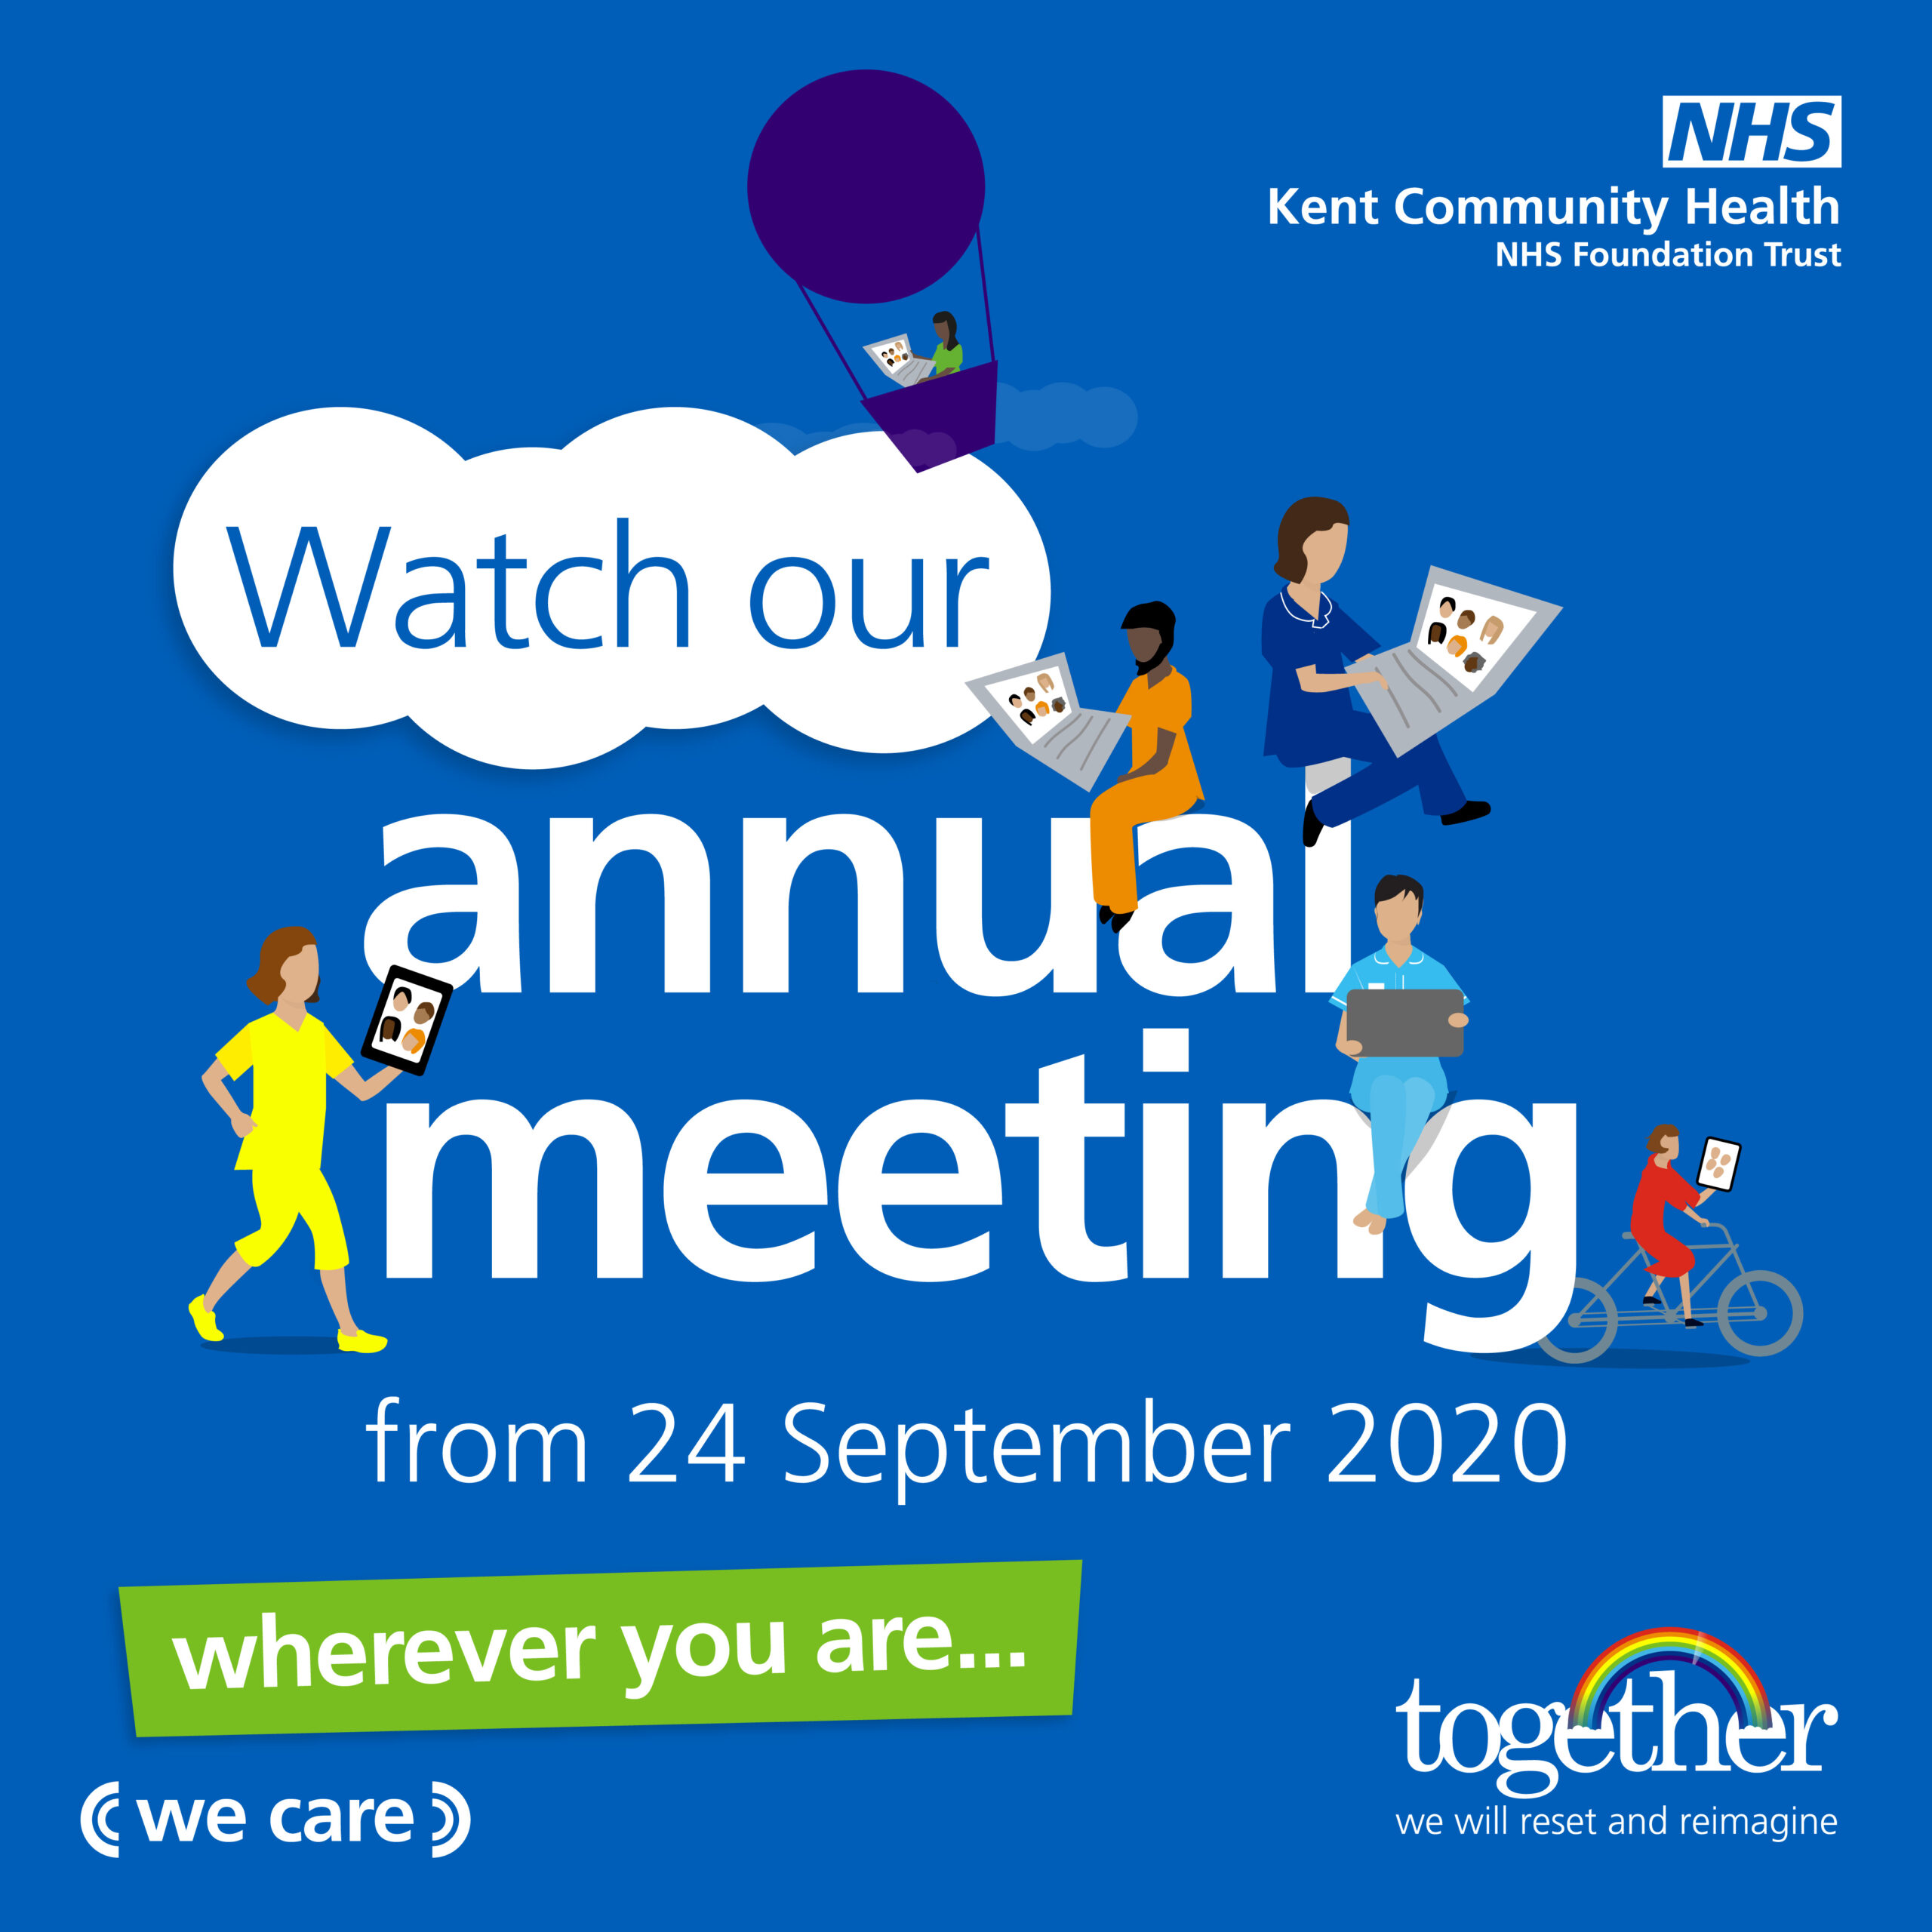 Watch our 2019/20 annual meeting